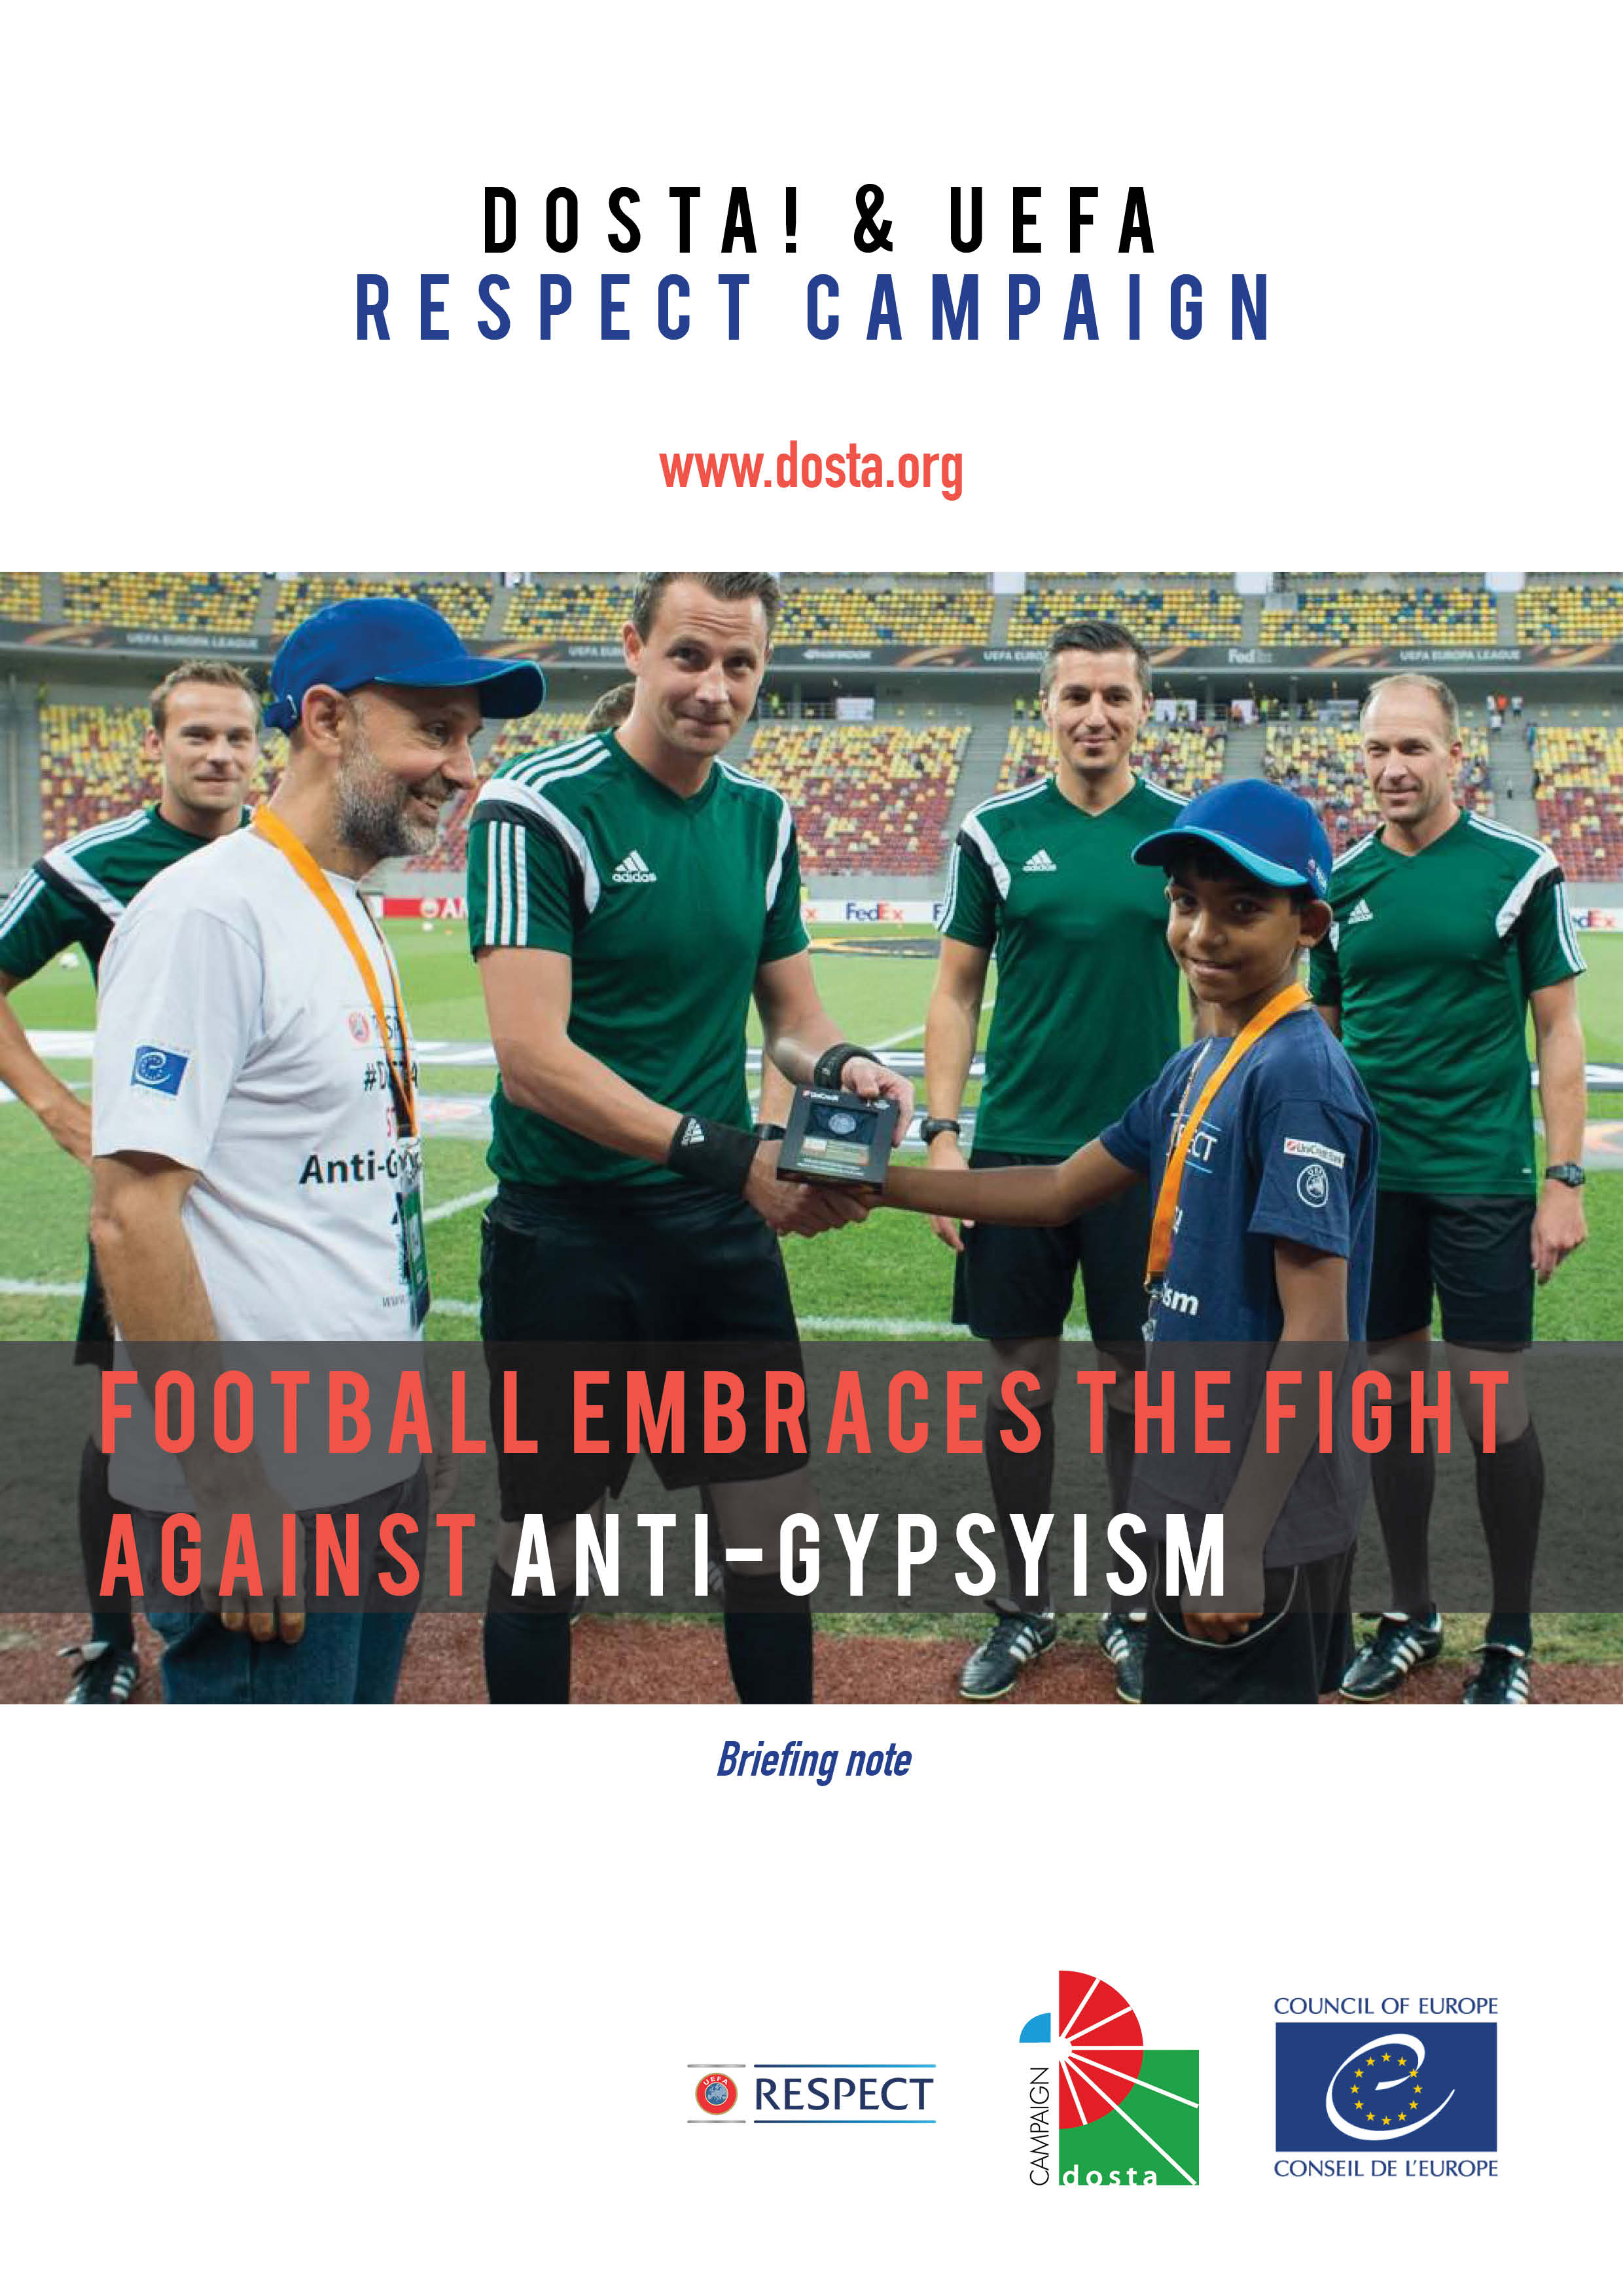 Football embraces the fight Against Anti-Gypsyism